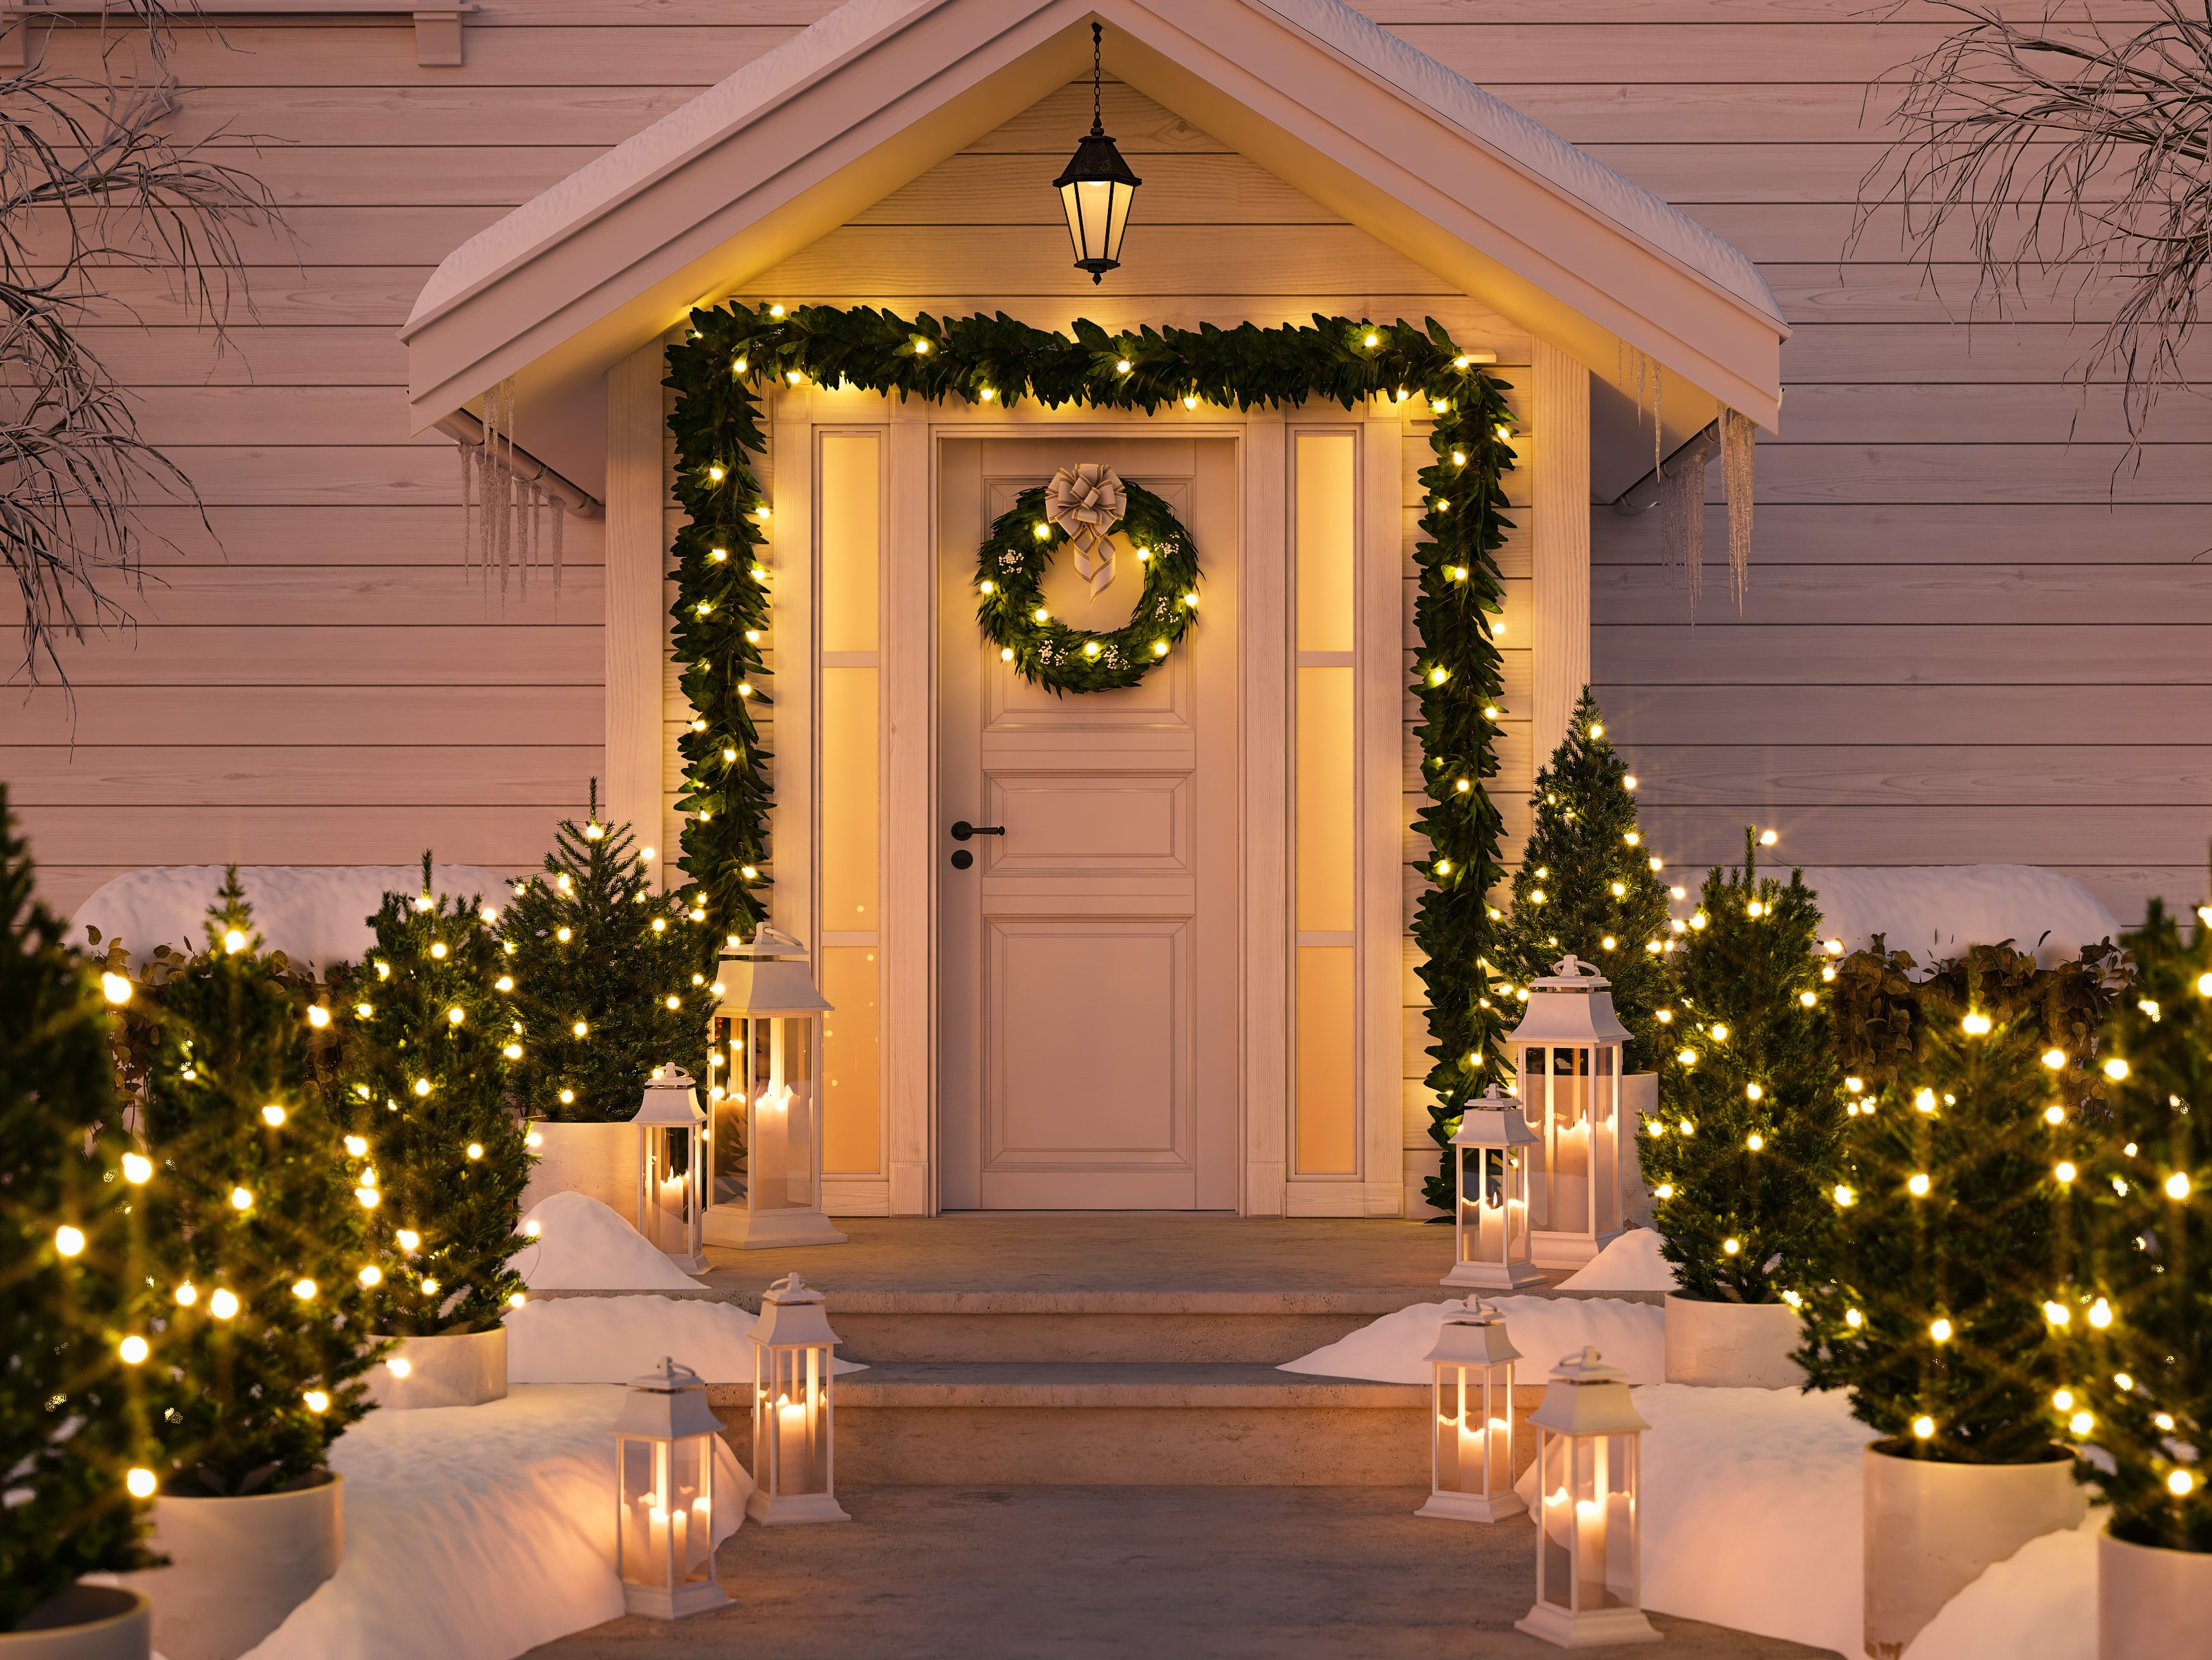 20 Chic Outdoor Christmas Decorations